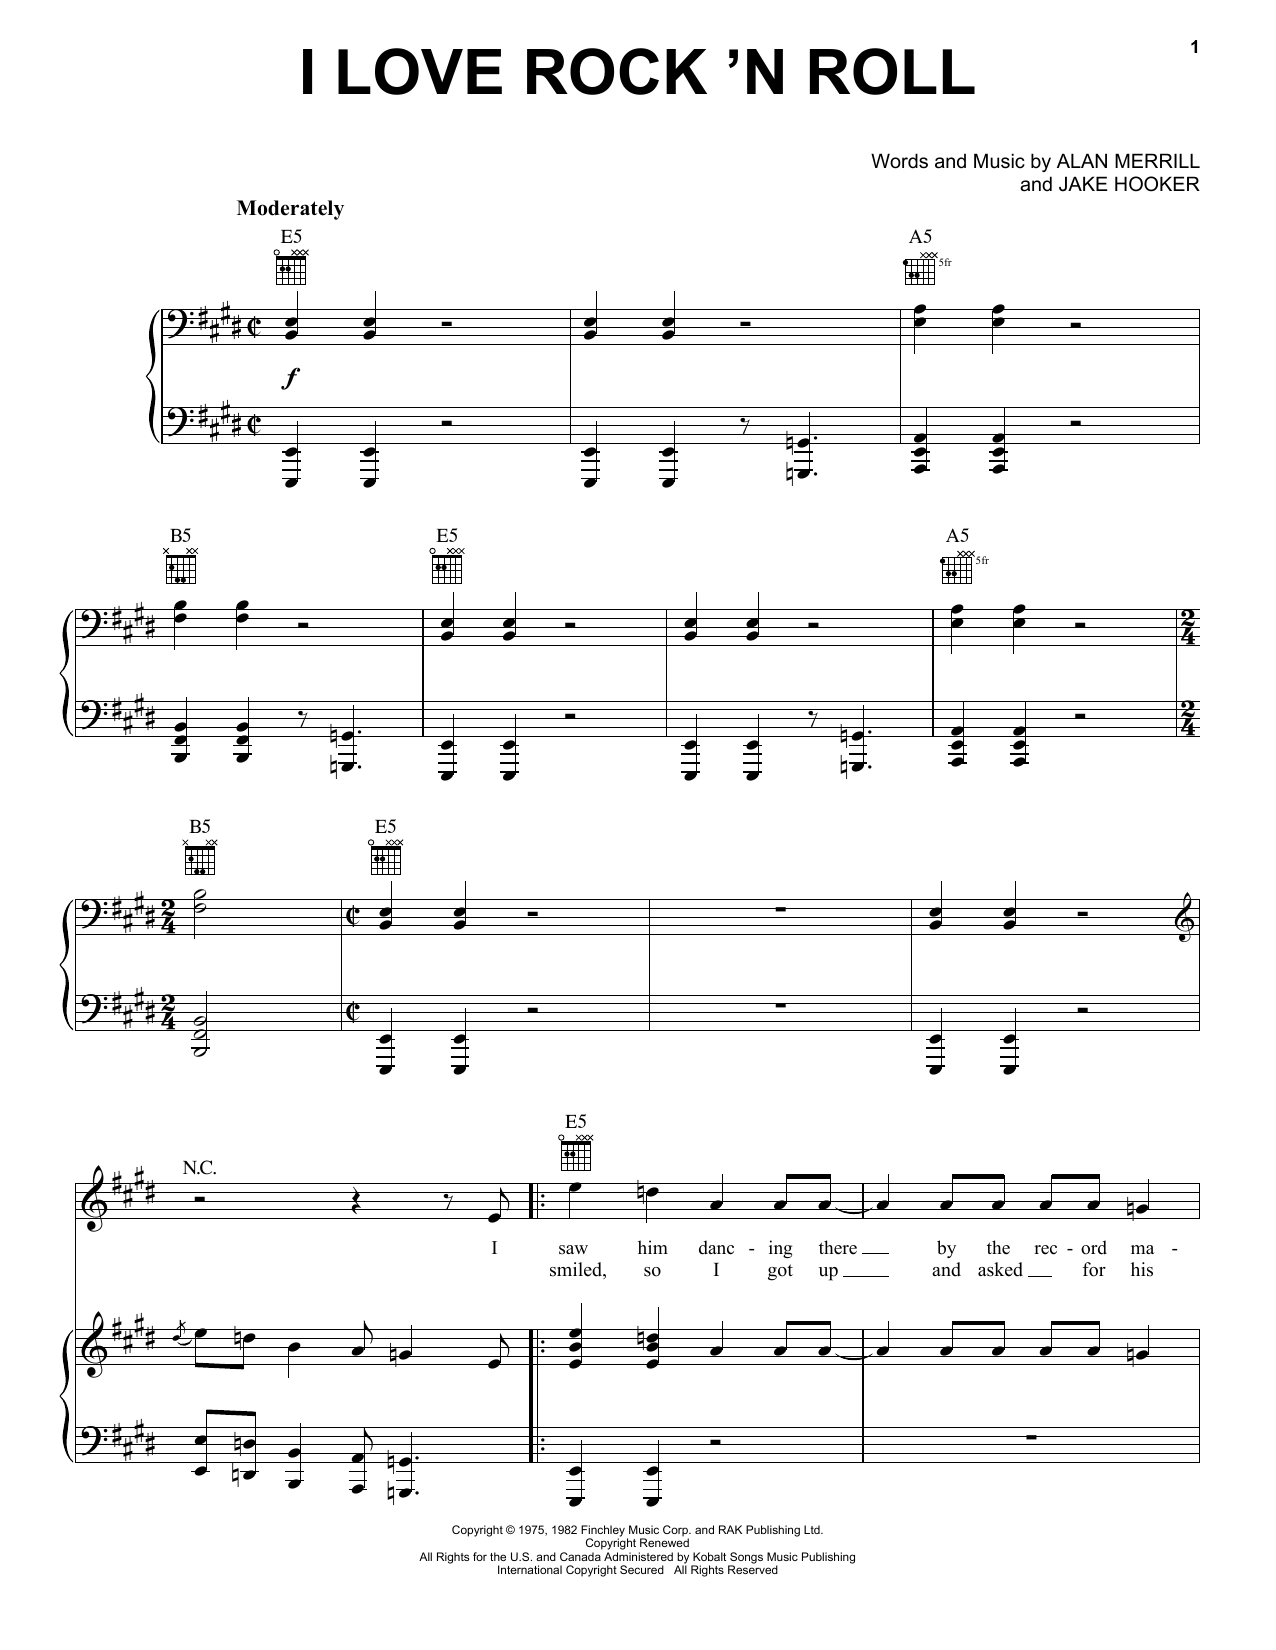 Joan Jett & The Blackhearts I Love Rock 'N Roll sheet music notes and chords. Download Printable PDF.